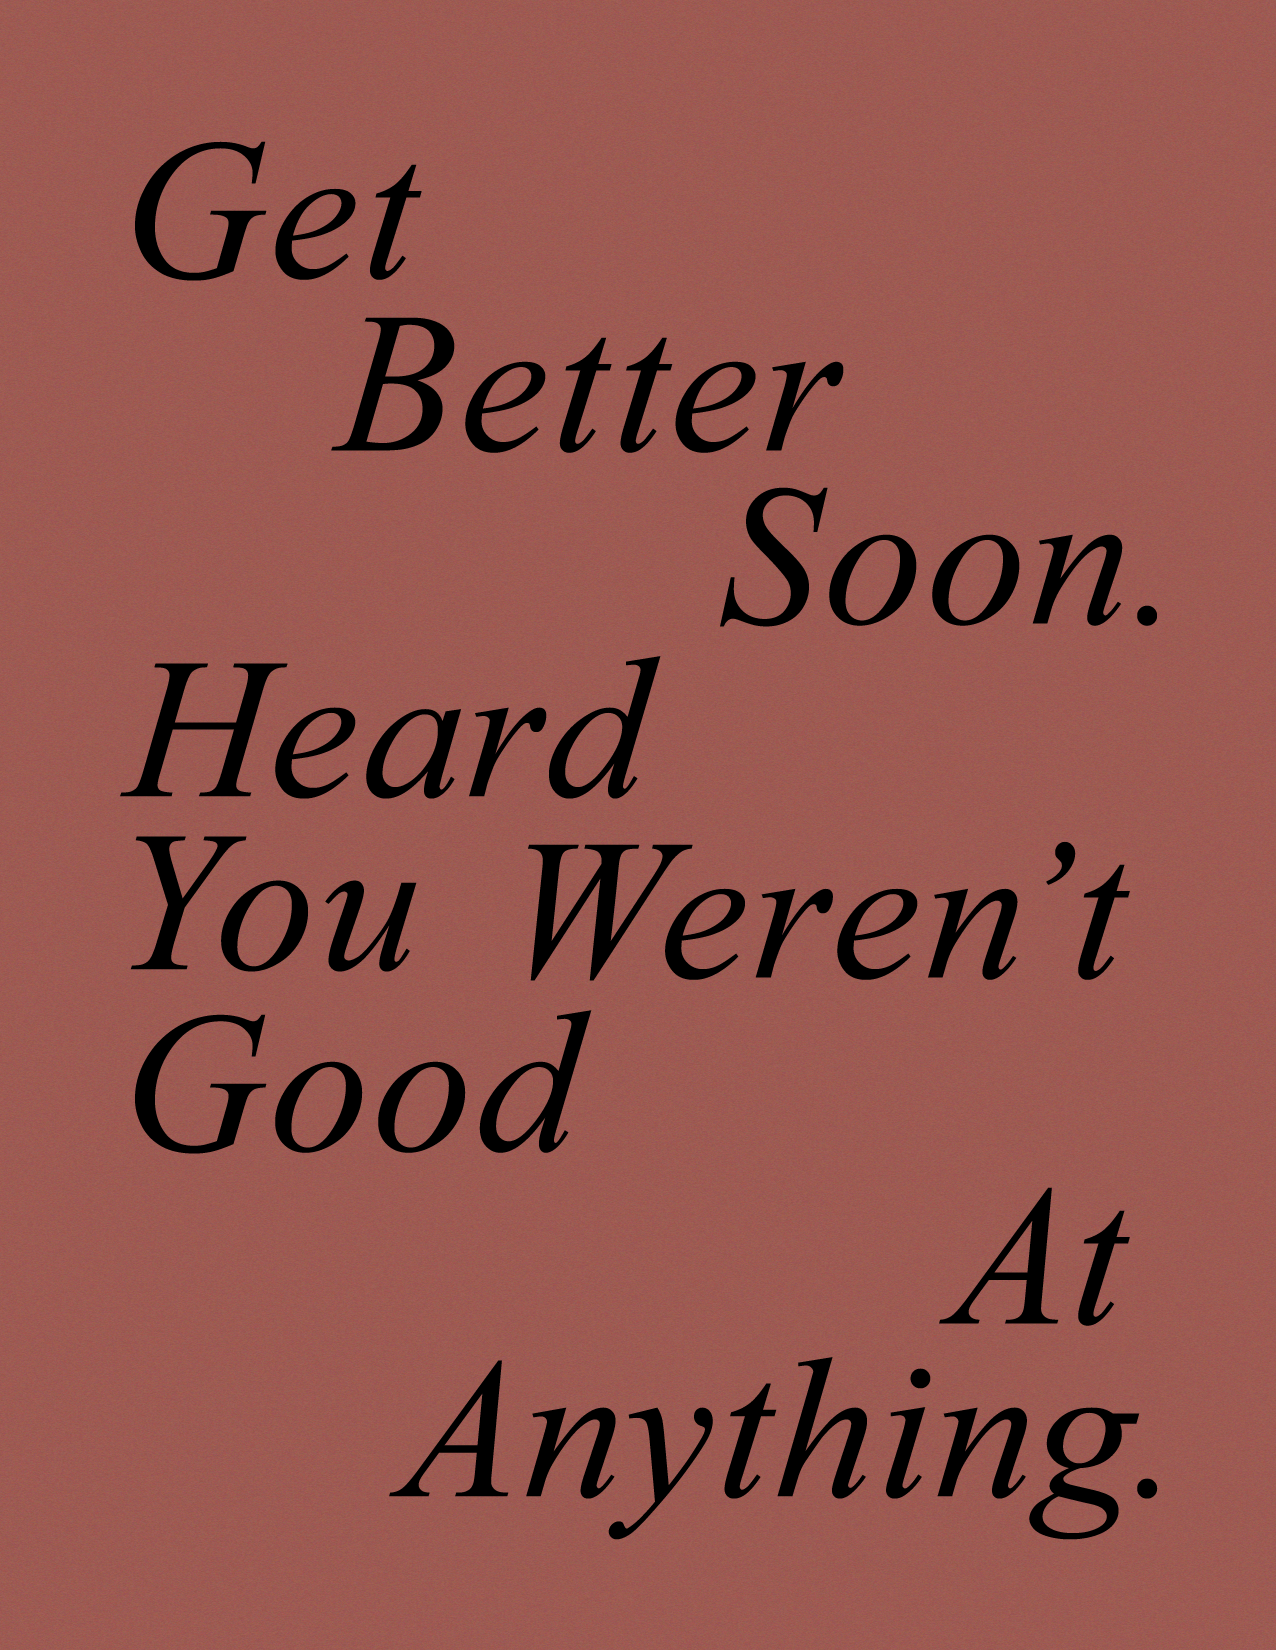 Get Better Soon-Mean.png